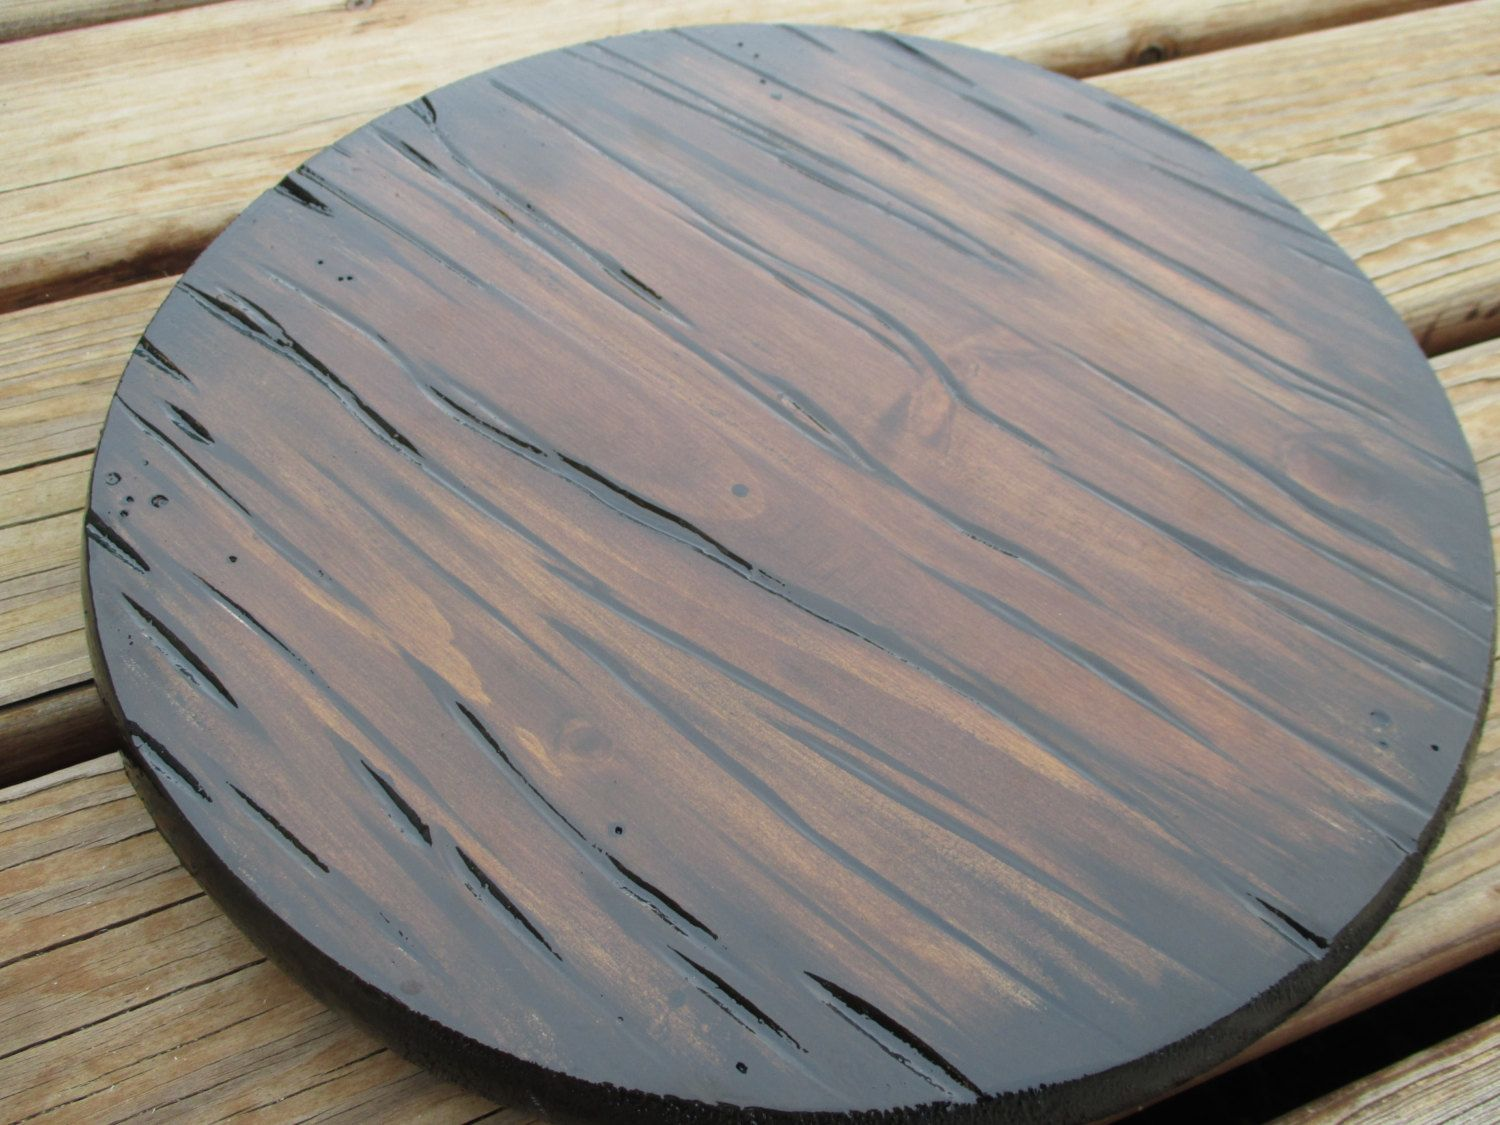 Wood lazy susans for tables - 12 Carved Wood Lazy Susan Handmade Rustic By Bandannamarie On Etsy 45 00